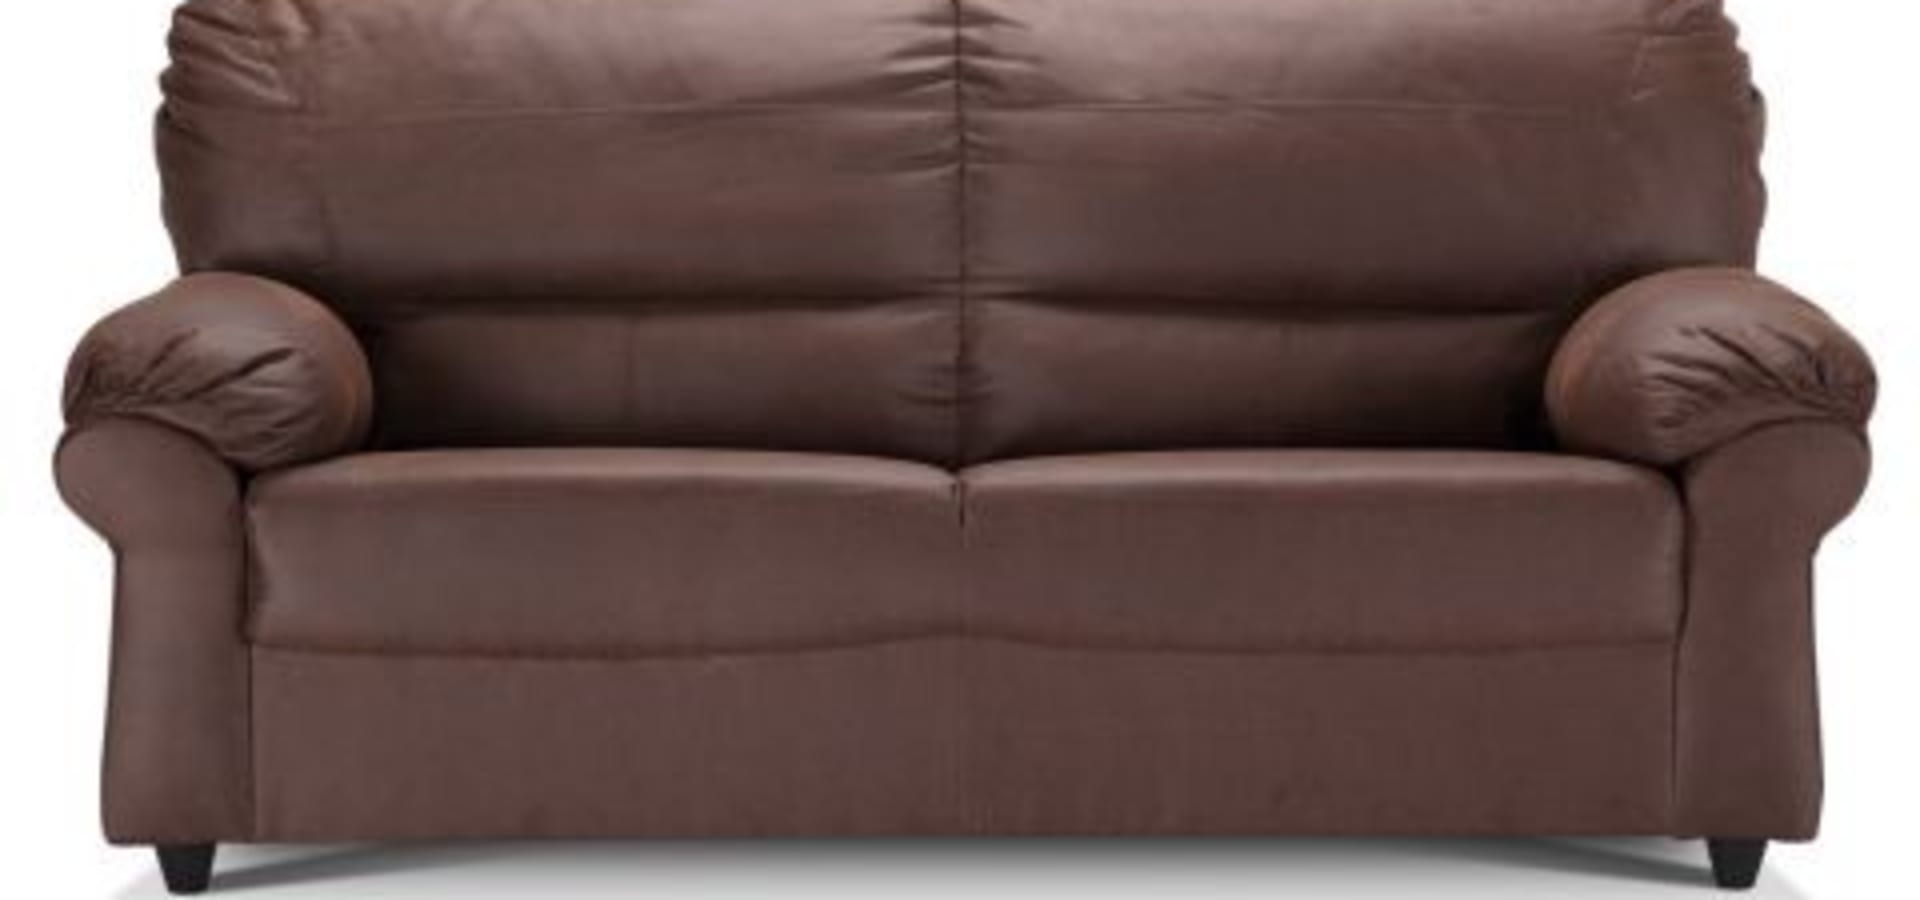 Leather Sofas Ltd